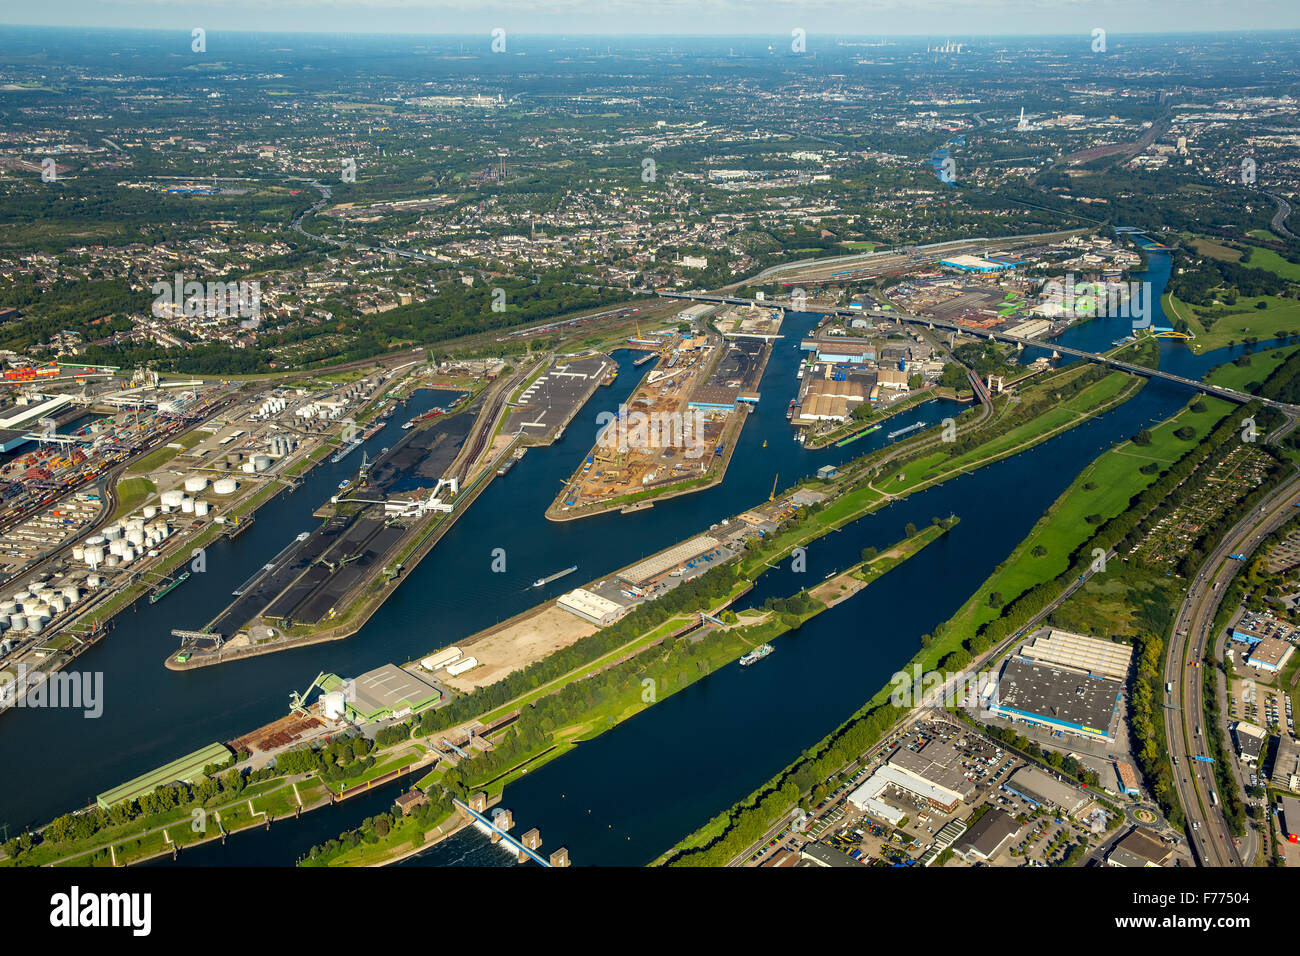 Duisport Duisburg, Duisburg harbor, the largest inland port in Europe, Ruhr, Rhine-Herne Canal, inland waterways, - Stock Image